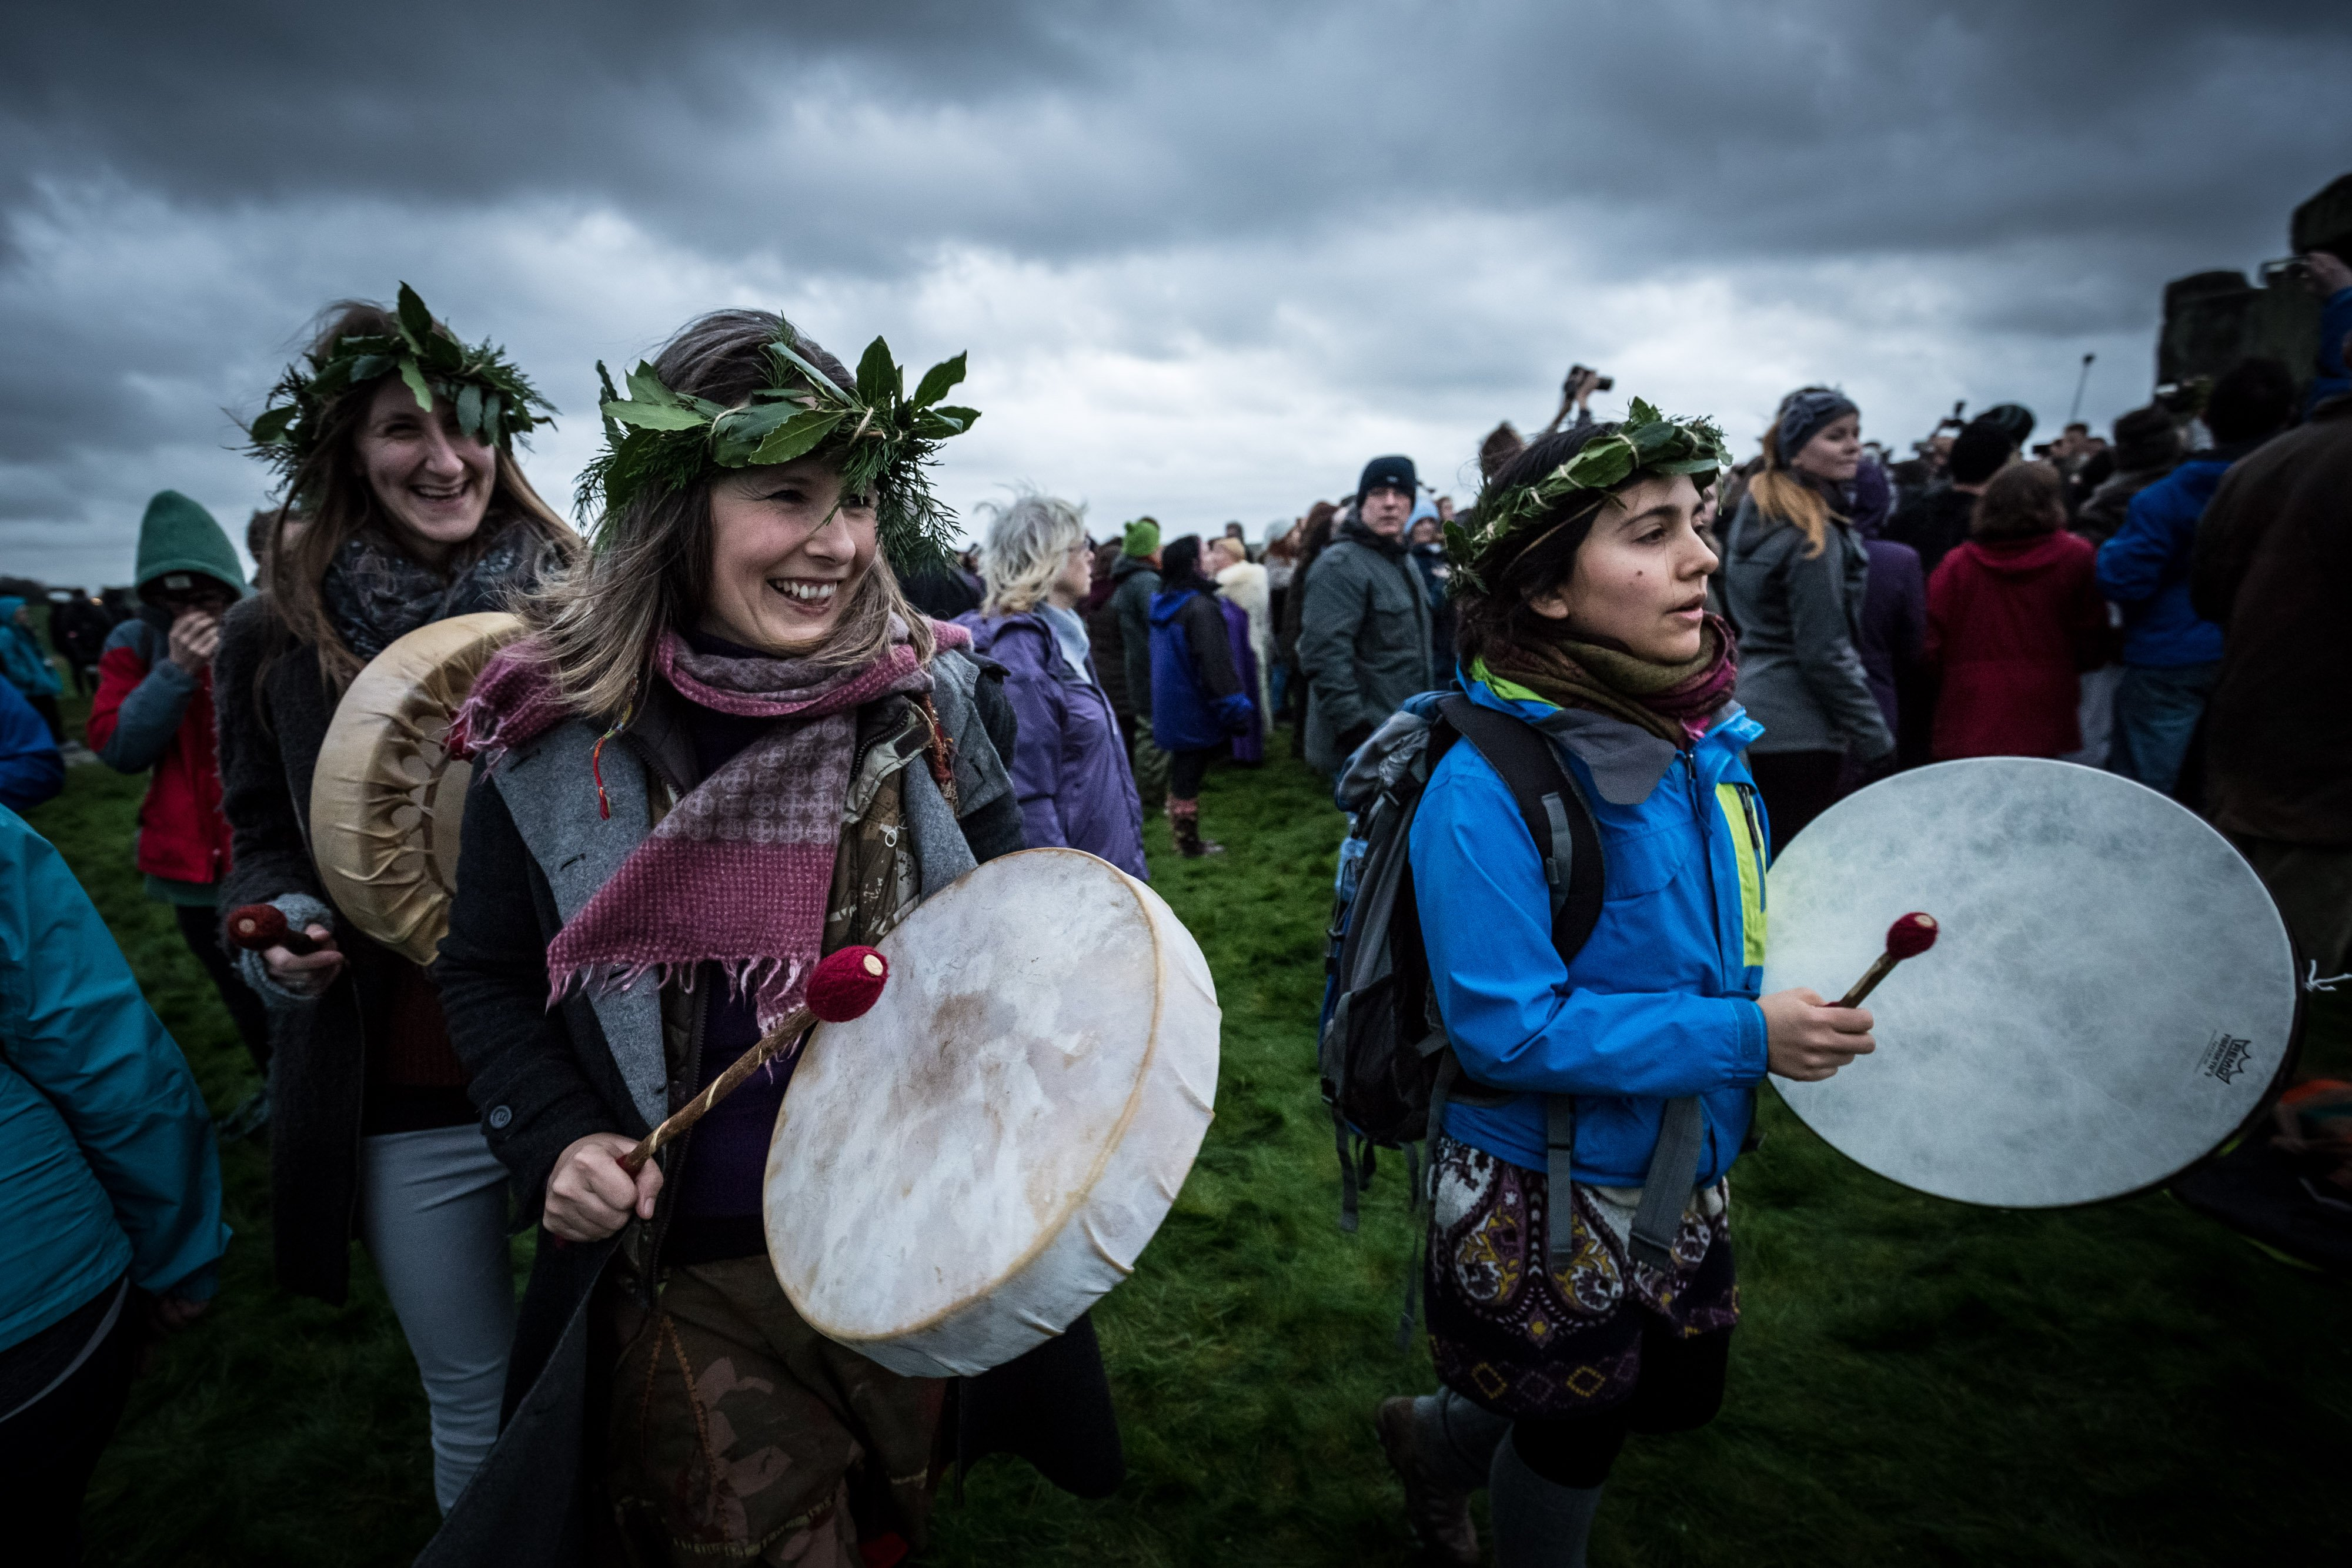 Revelers gather near the ancient stones at Stonehenge on Salisbury Plain, UK to celebrate the first day of winter, on Dec. 22, 2015.